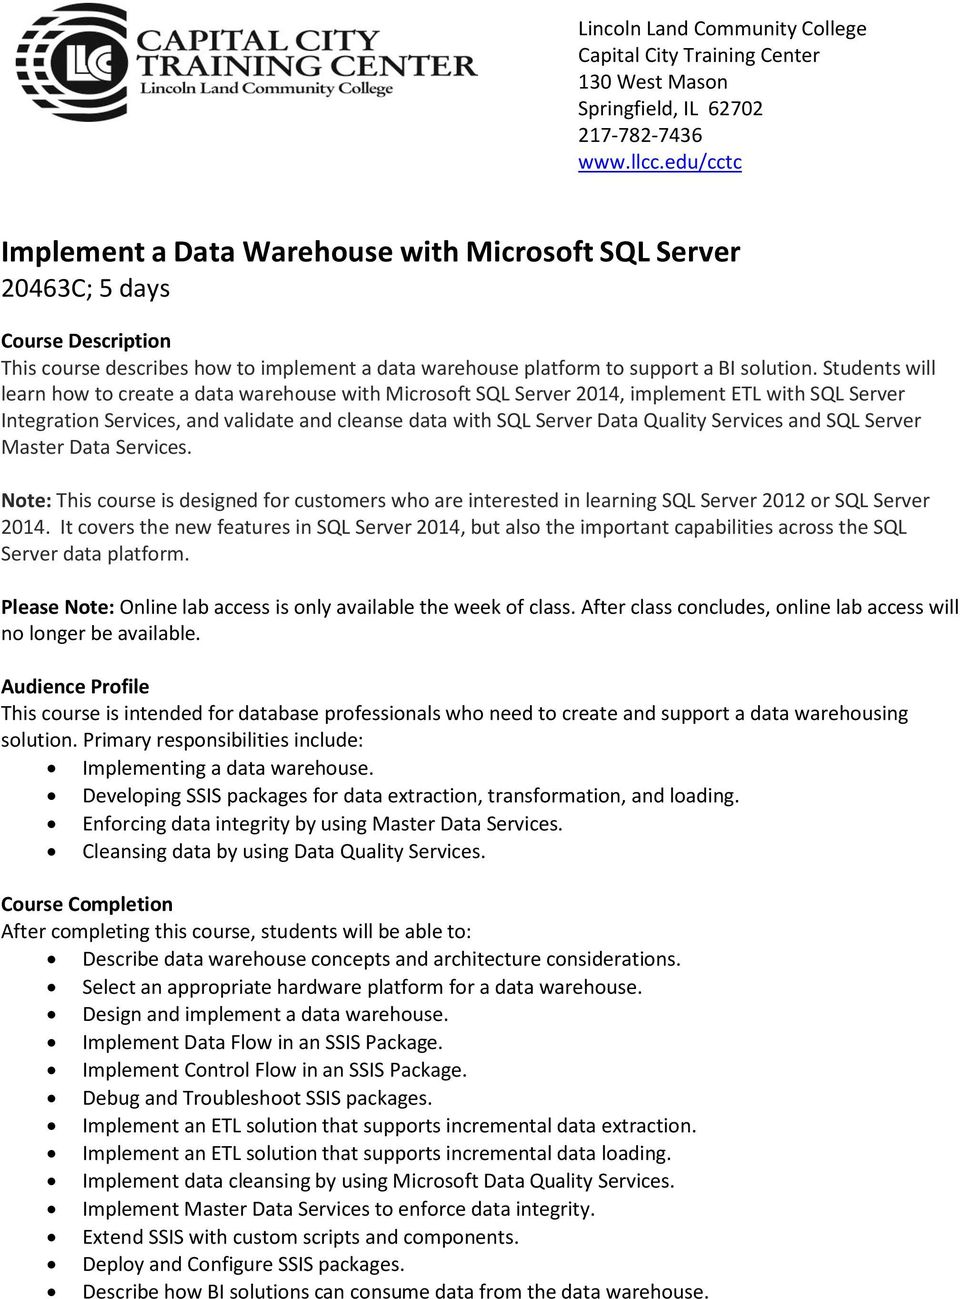 Students will learn how to create a data warehouse with Microsoft SQL Server 2014, implement ETL with SQL Server Integration Services, and validate and cleanse data with SQL Server Data Quality